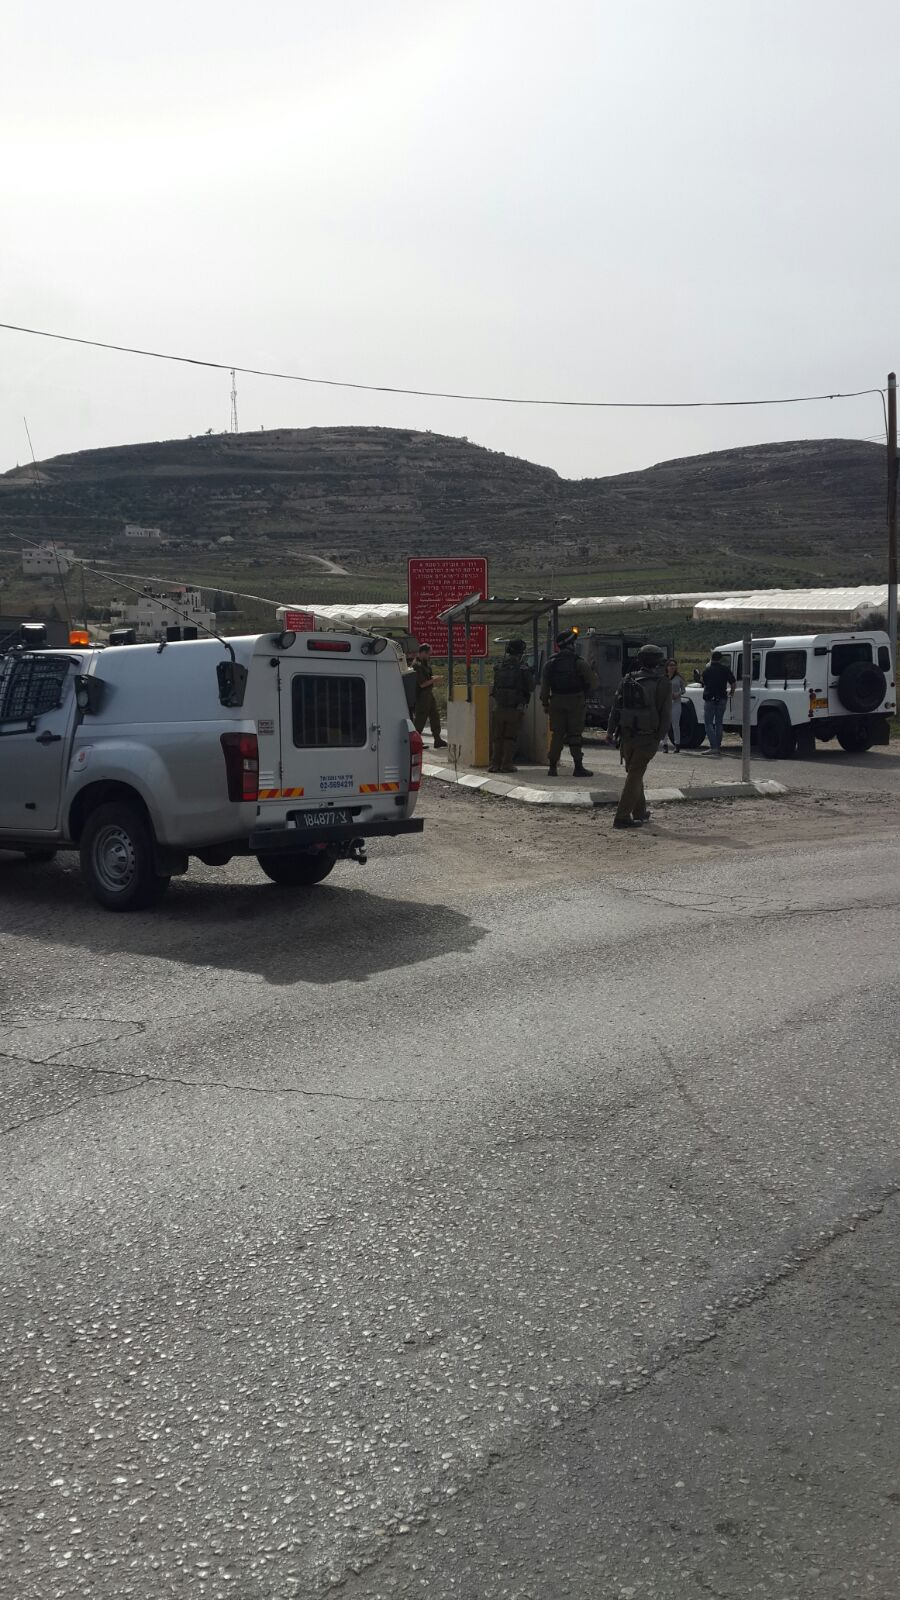 Stabbing Attack between Otniel & Beit Chaggai  [UPDATED 12:19PM IL]